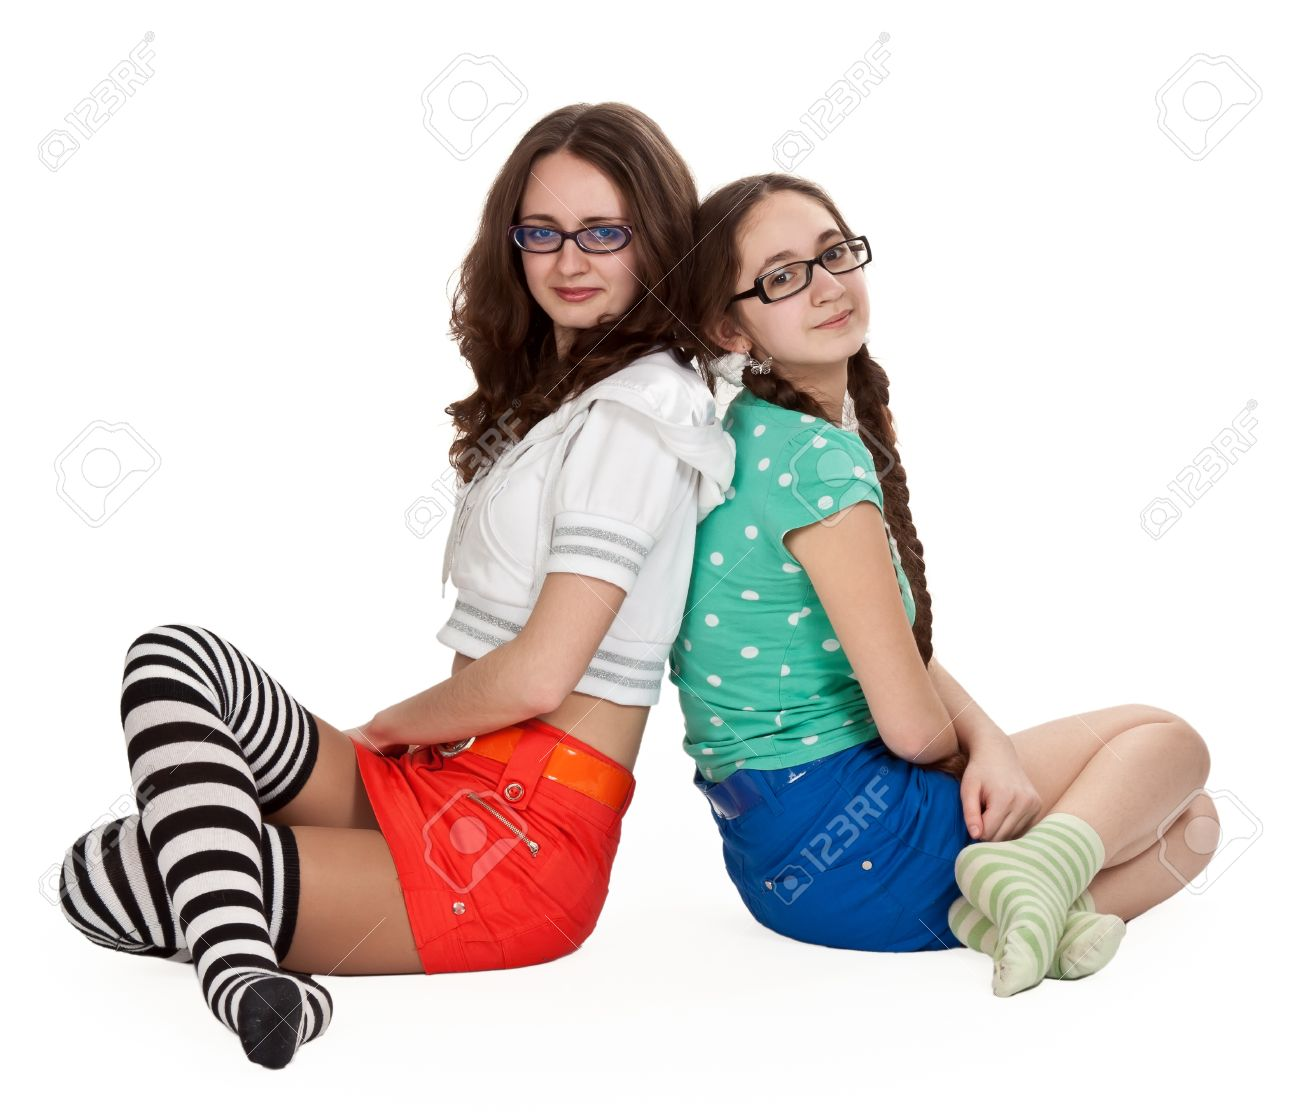 Stock Photo Two Girls Are Sitting On A White Floor In Colored Skirts And Striped Socks